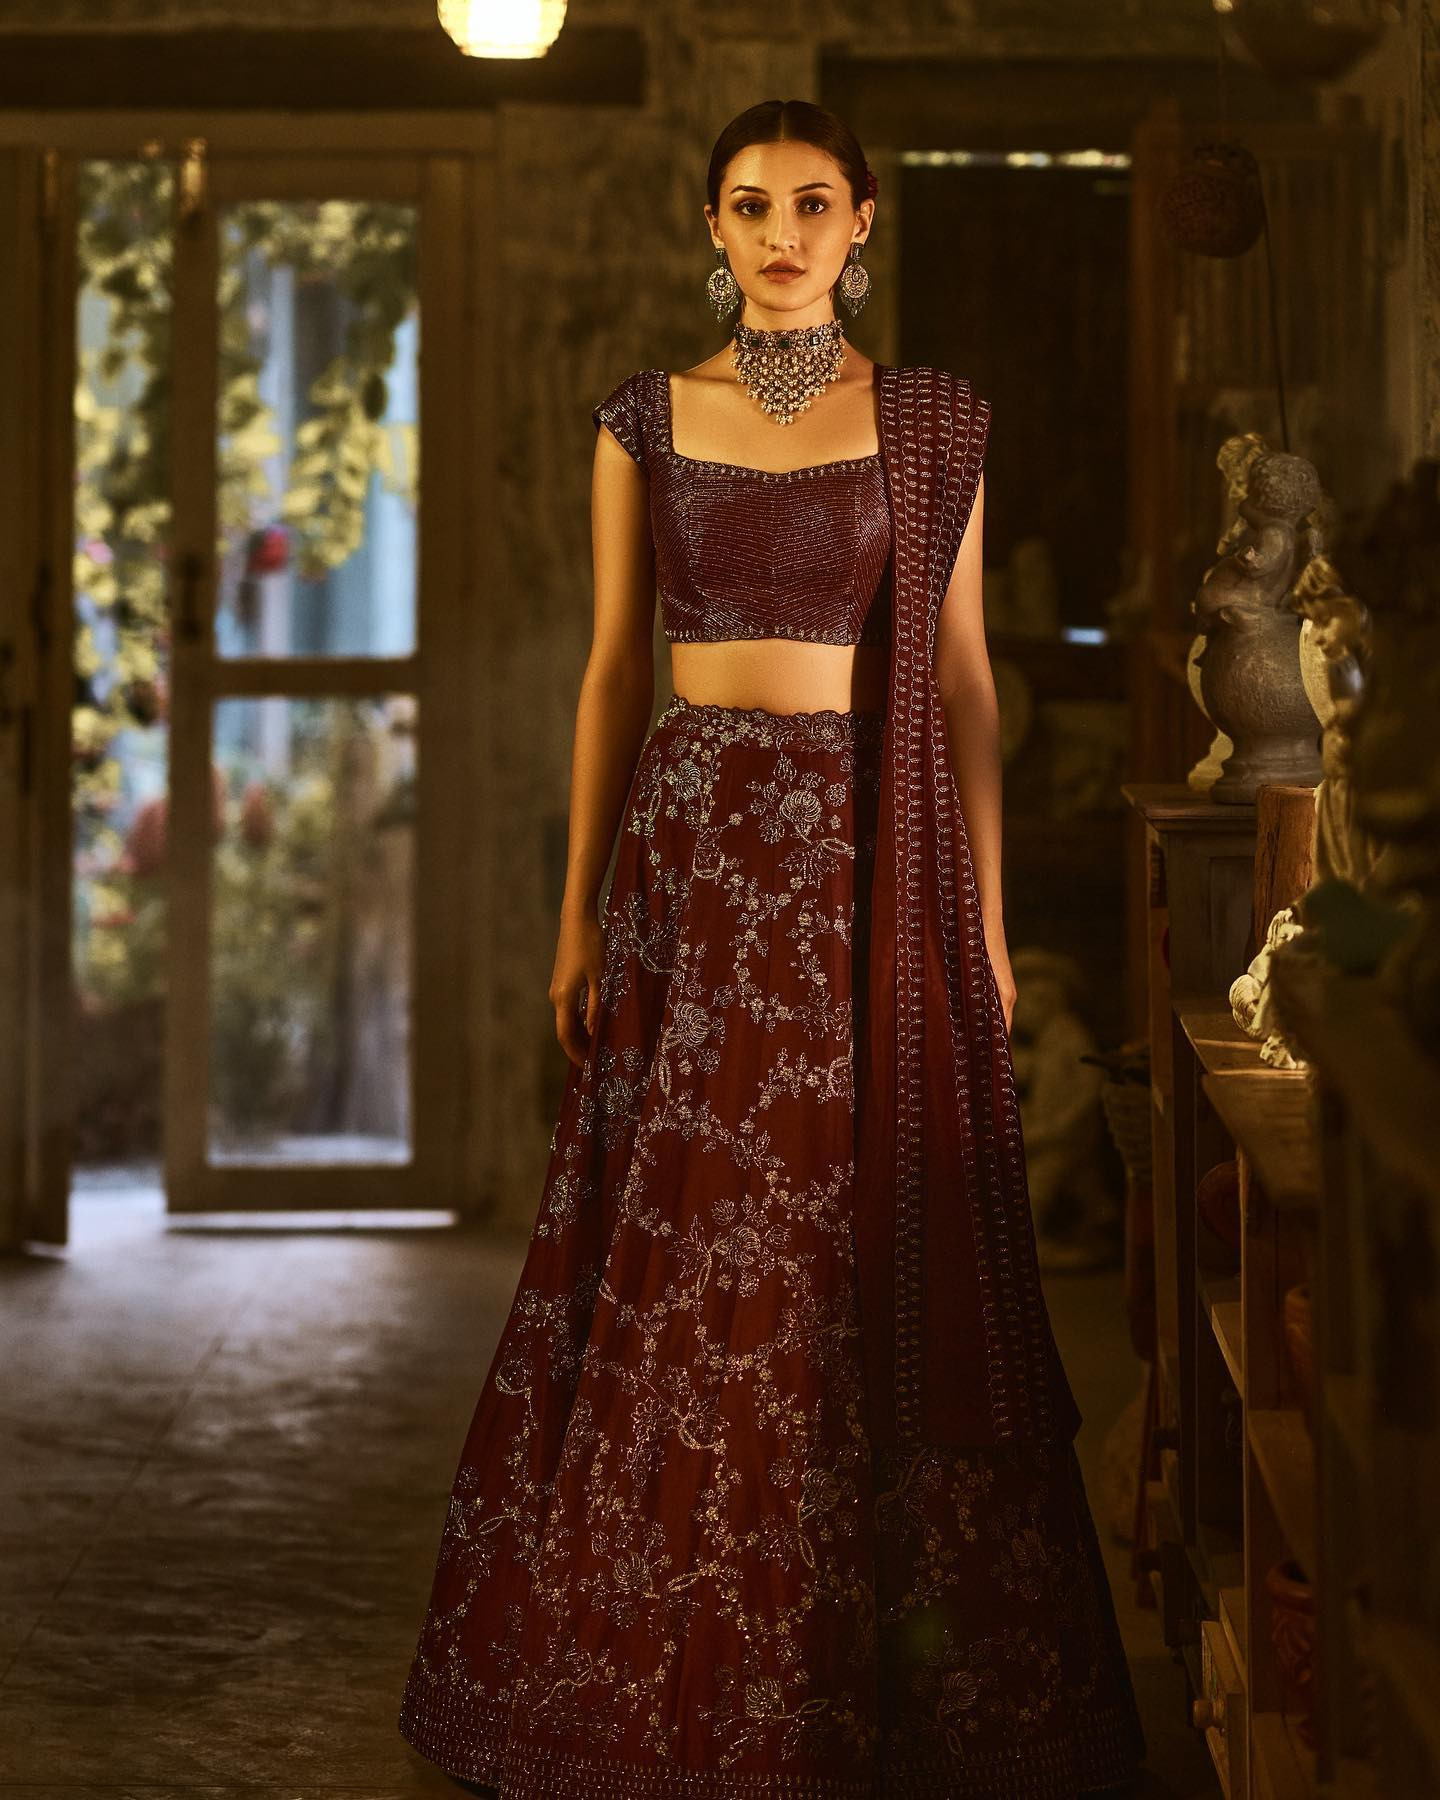 Stunning brown color bridal lehenga with floral hand embroidery work.  2021-06-22